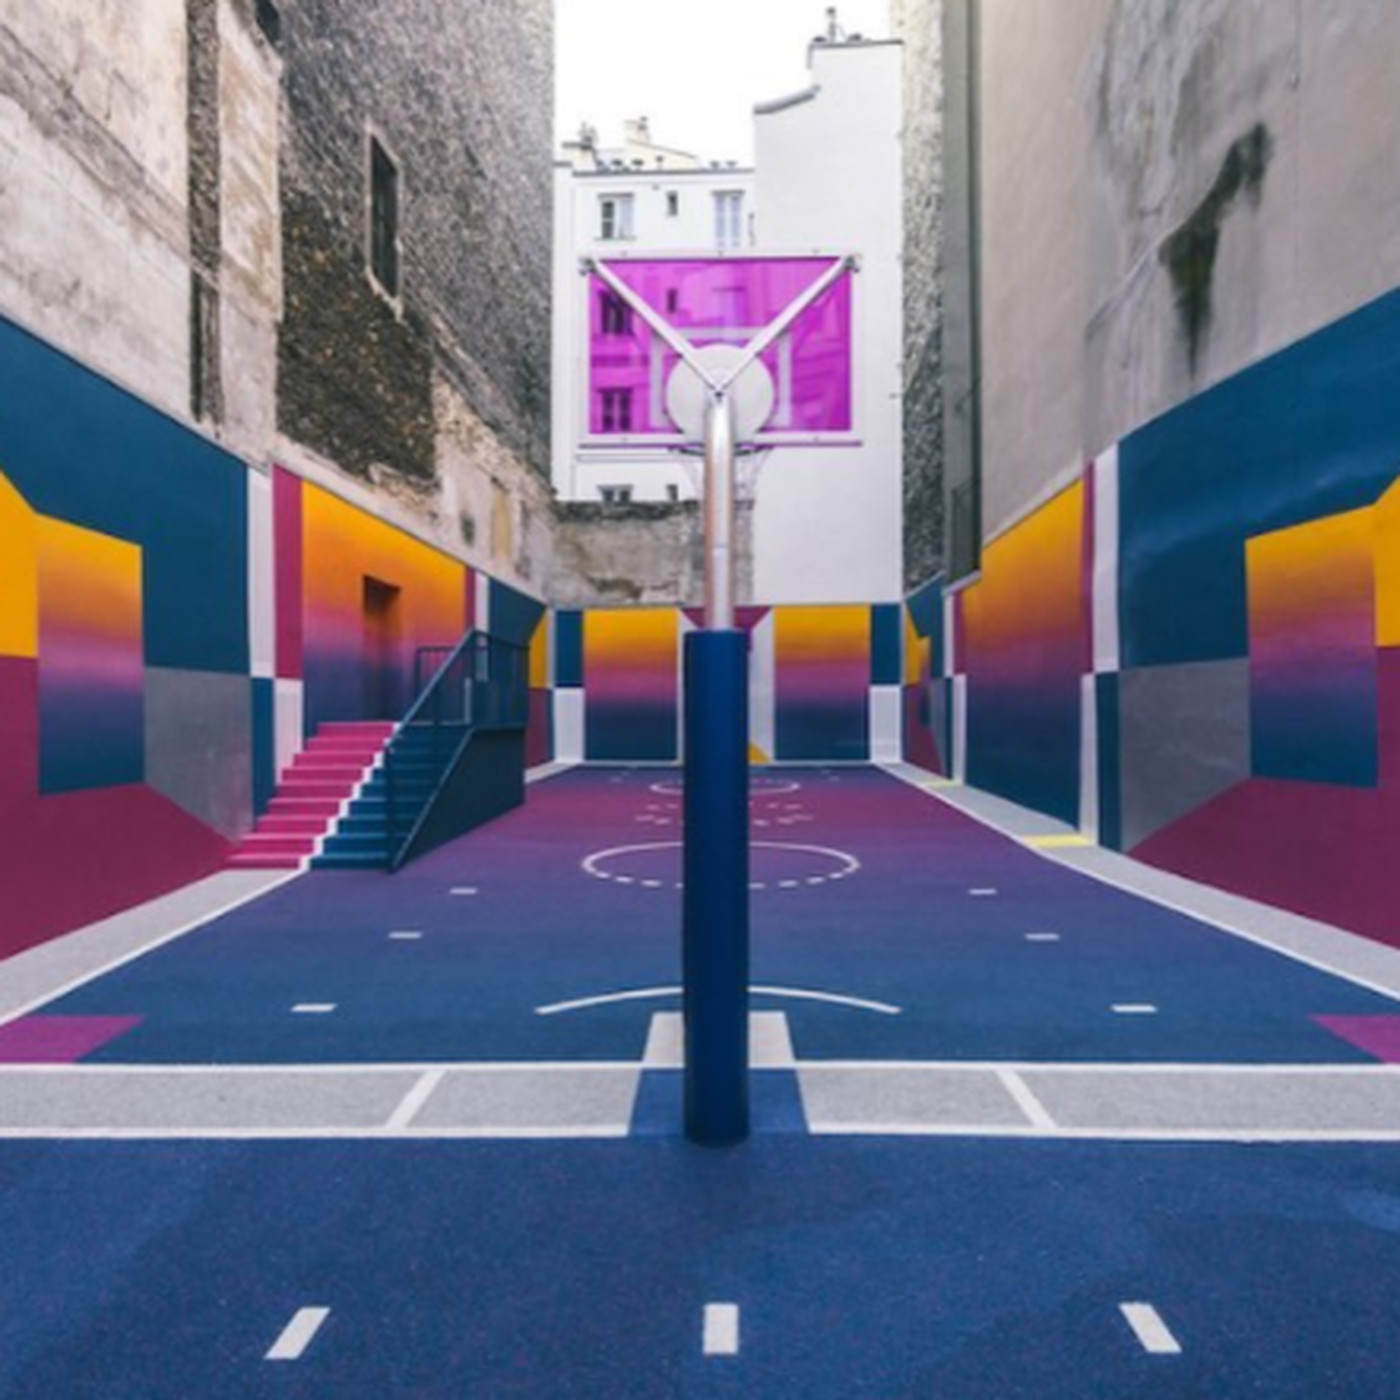 c2a92890a158 This amazing basketball court in Paris is straight out of the future -  SBNation.com